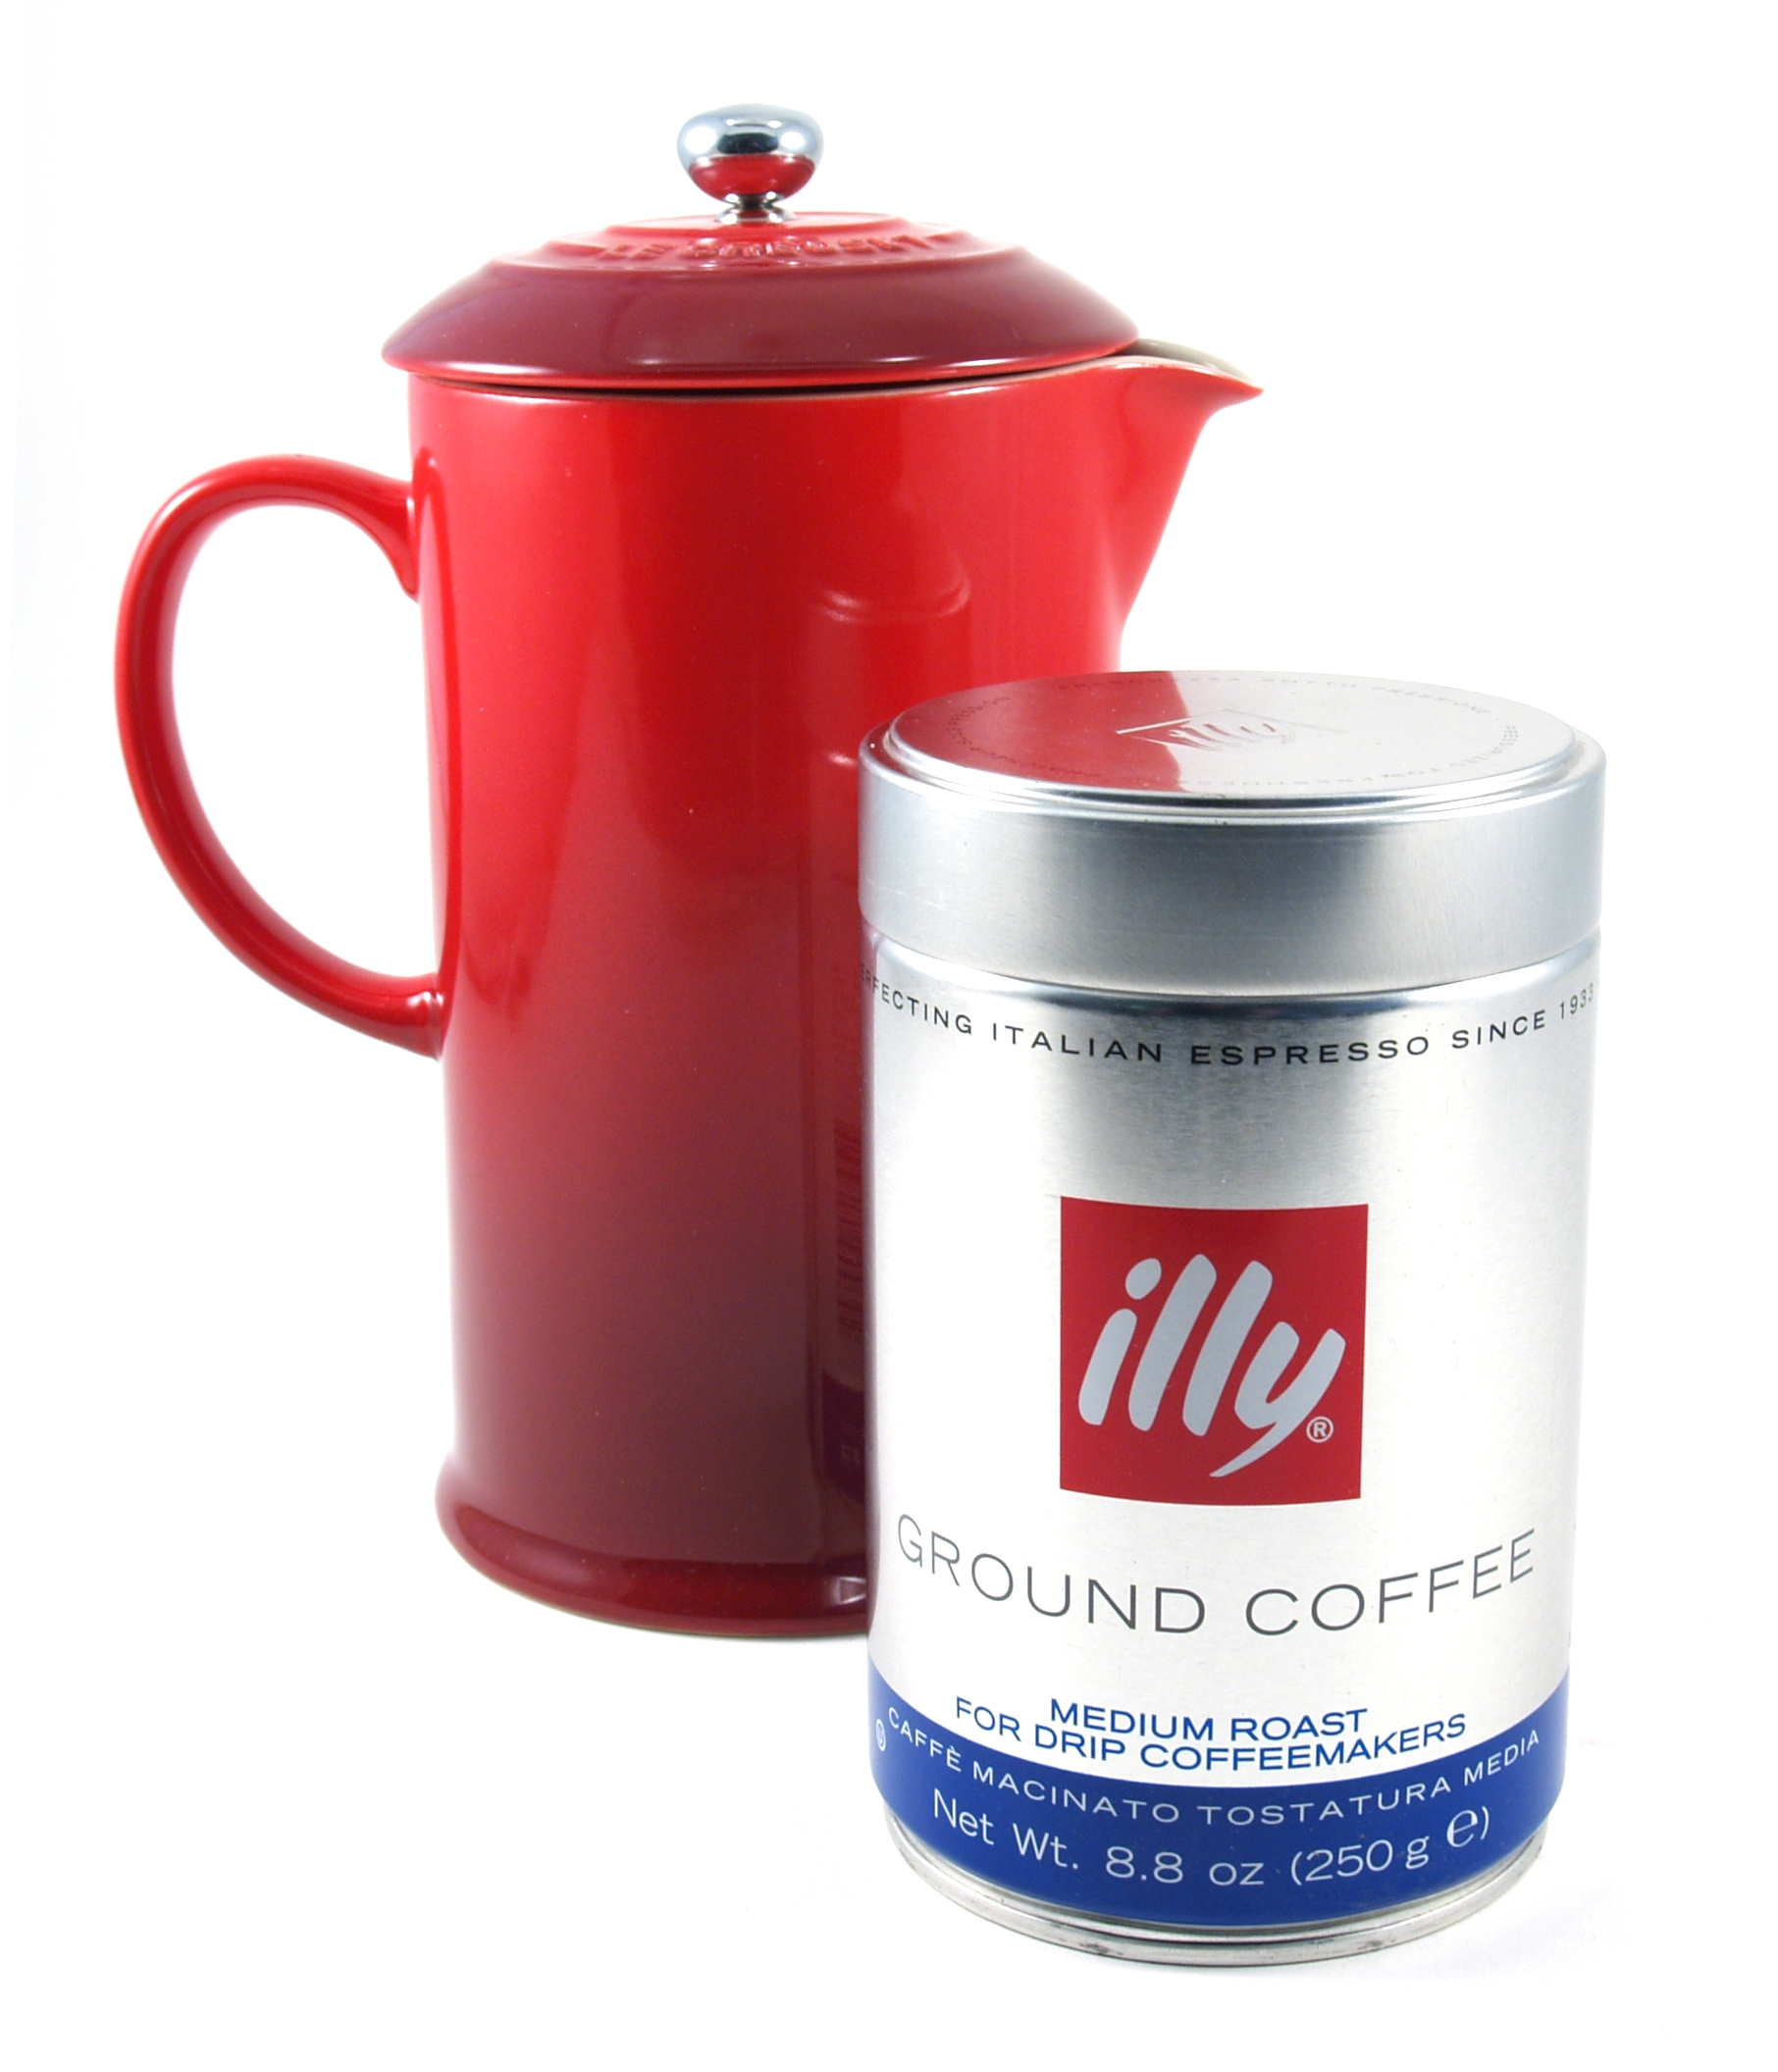 Le Creuset Cherry Stoneware French Press 1 Quart Coffee Maker with Illy Medium Roast Ground Coffee